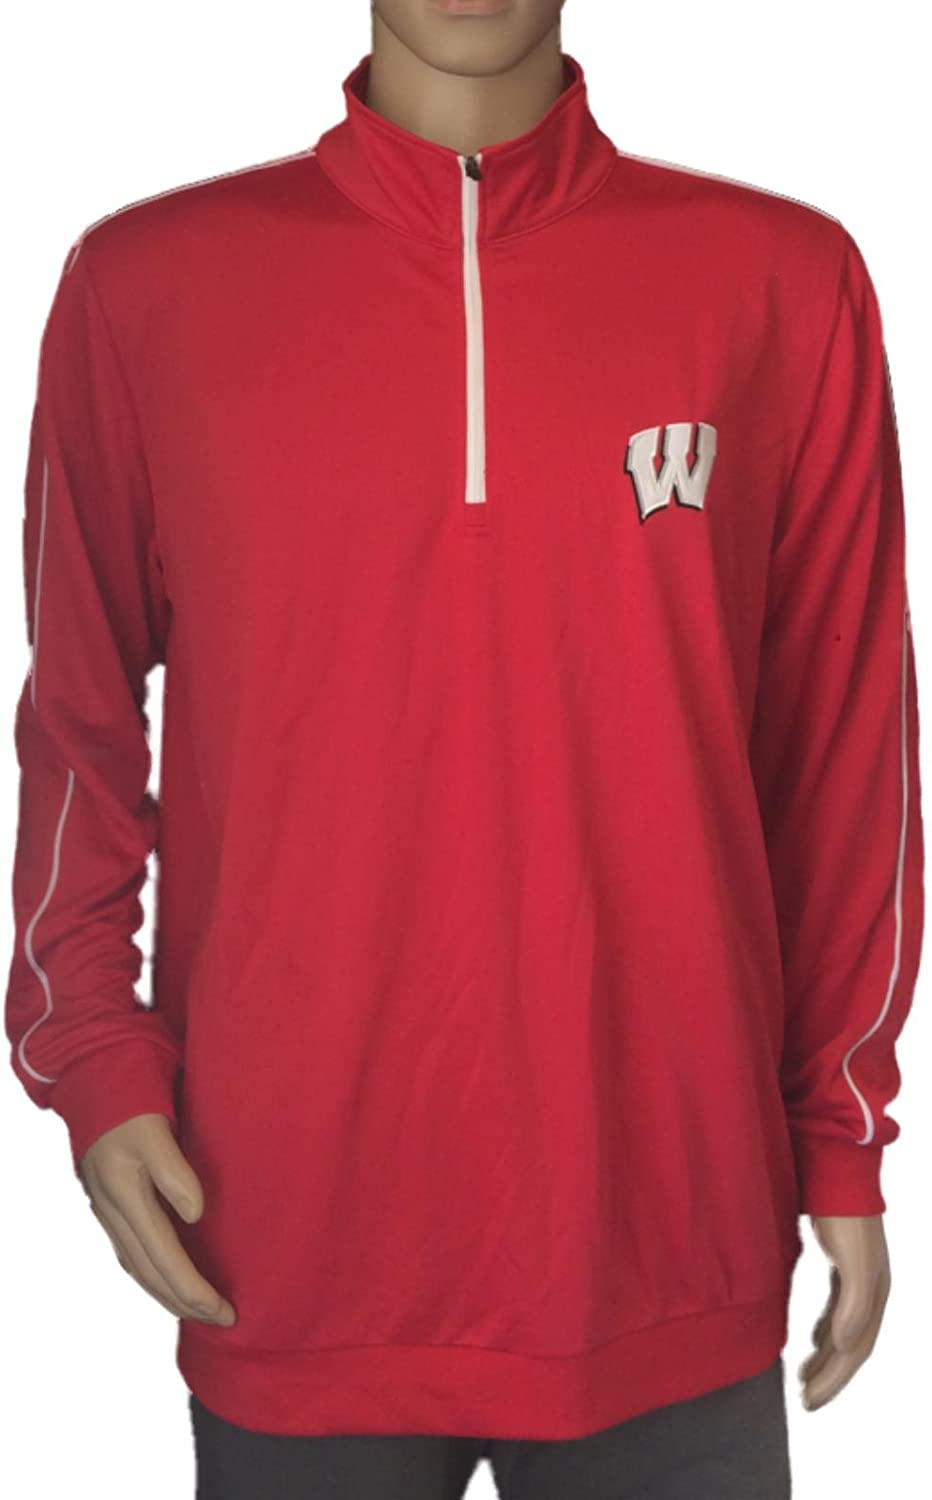 Colosseum Wisconsin Badgers Youth Boys 1//4 Zip 99 Yards Pullover